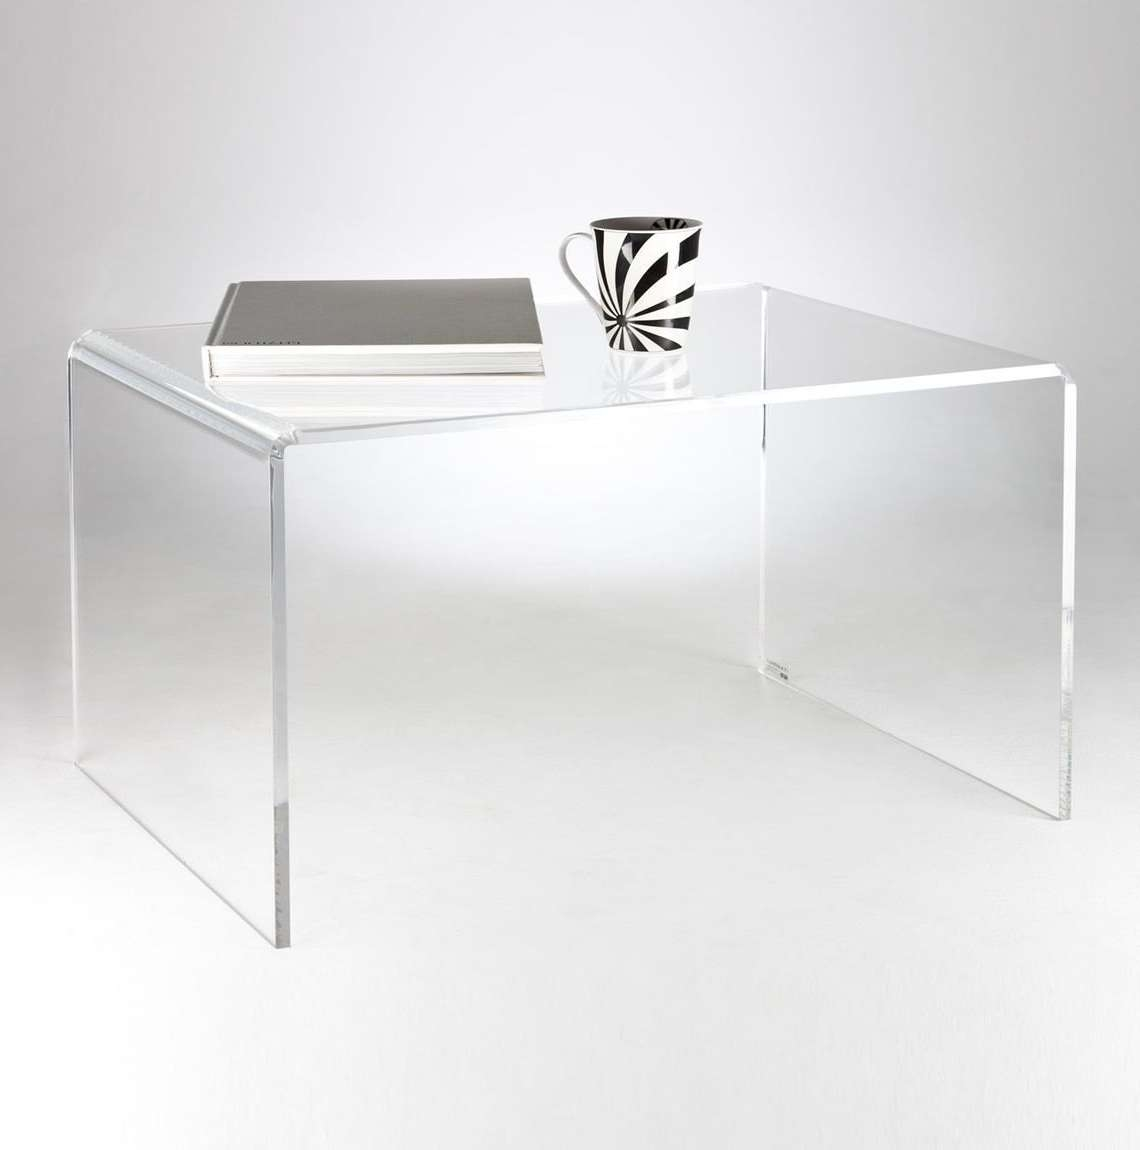 20 Best Collection Of Perspex Coffee Table